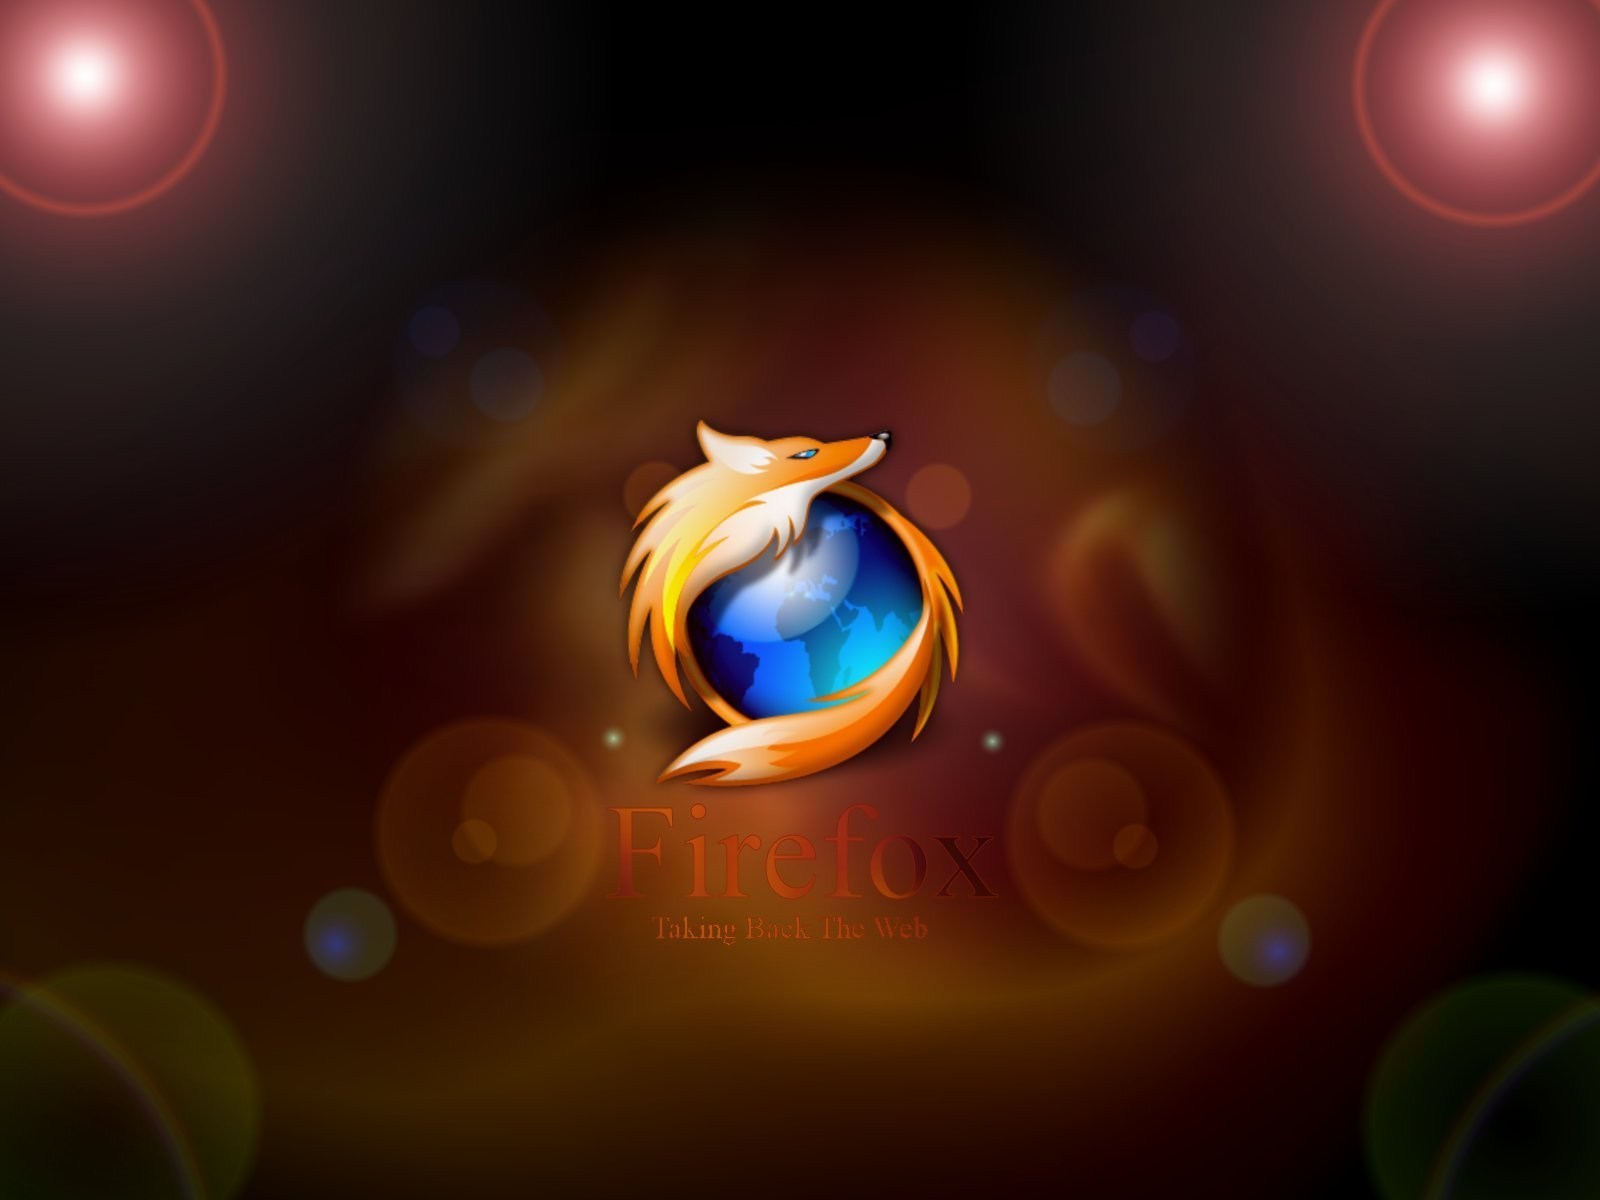 Picture Abstract Firefox Wallpaper - Abstract Firefox Wallpaper